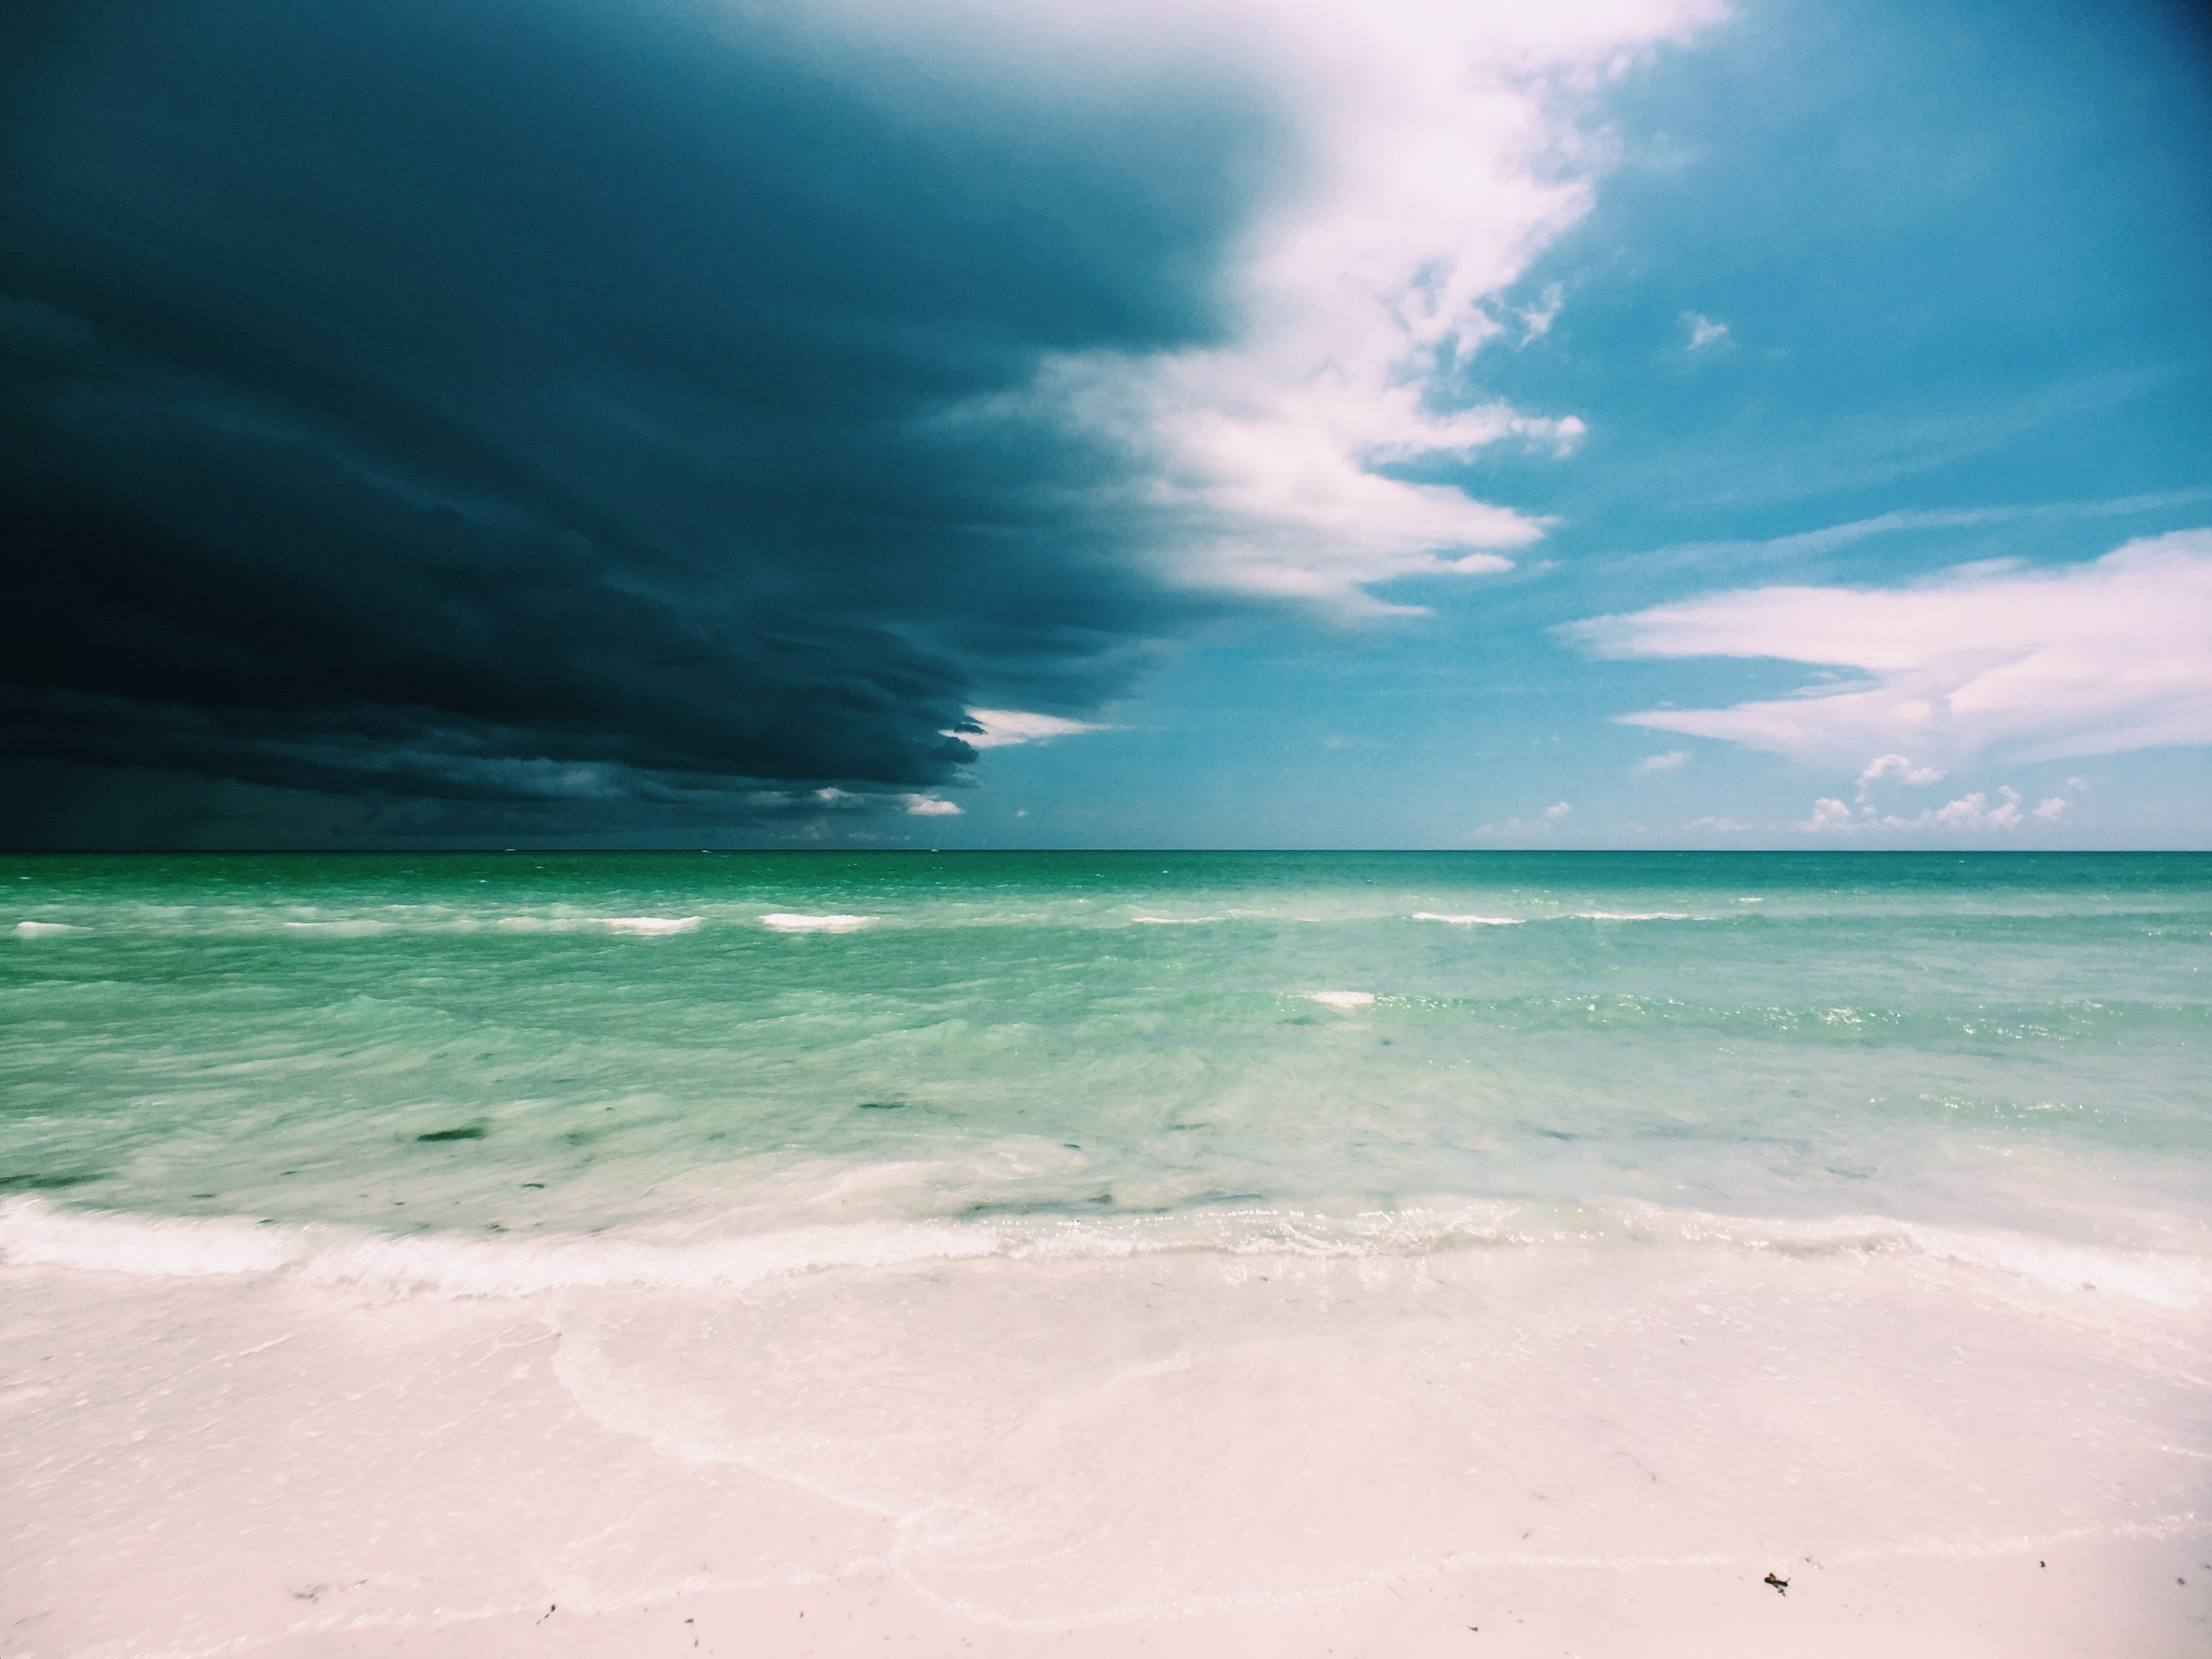 clear white sand beach under cloudy sky